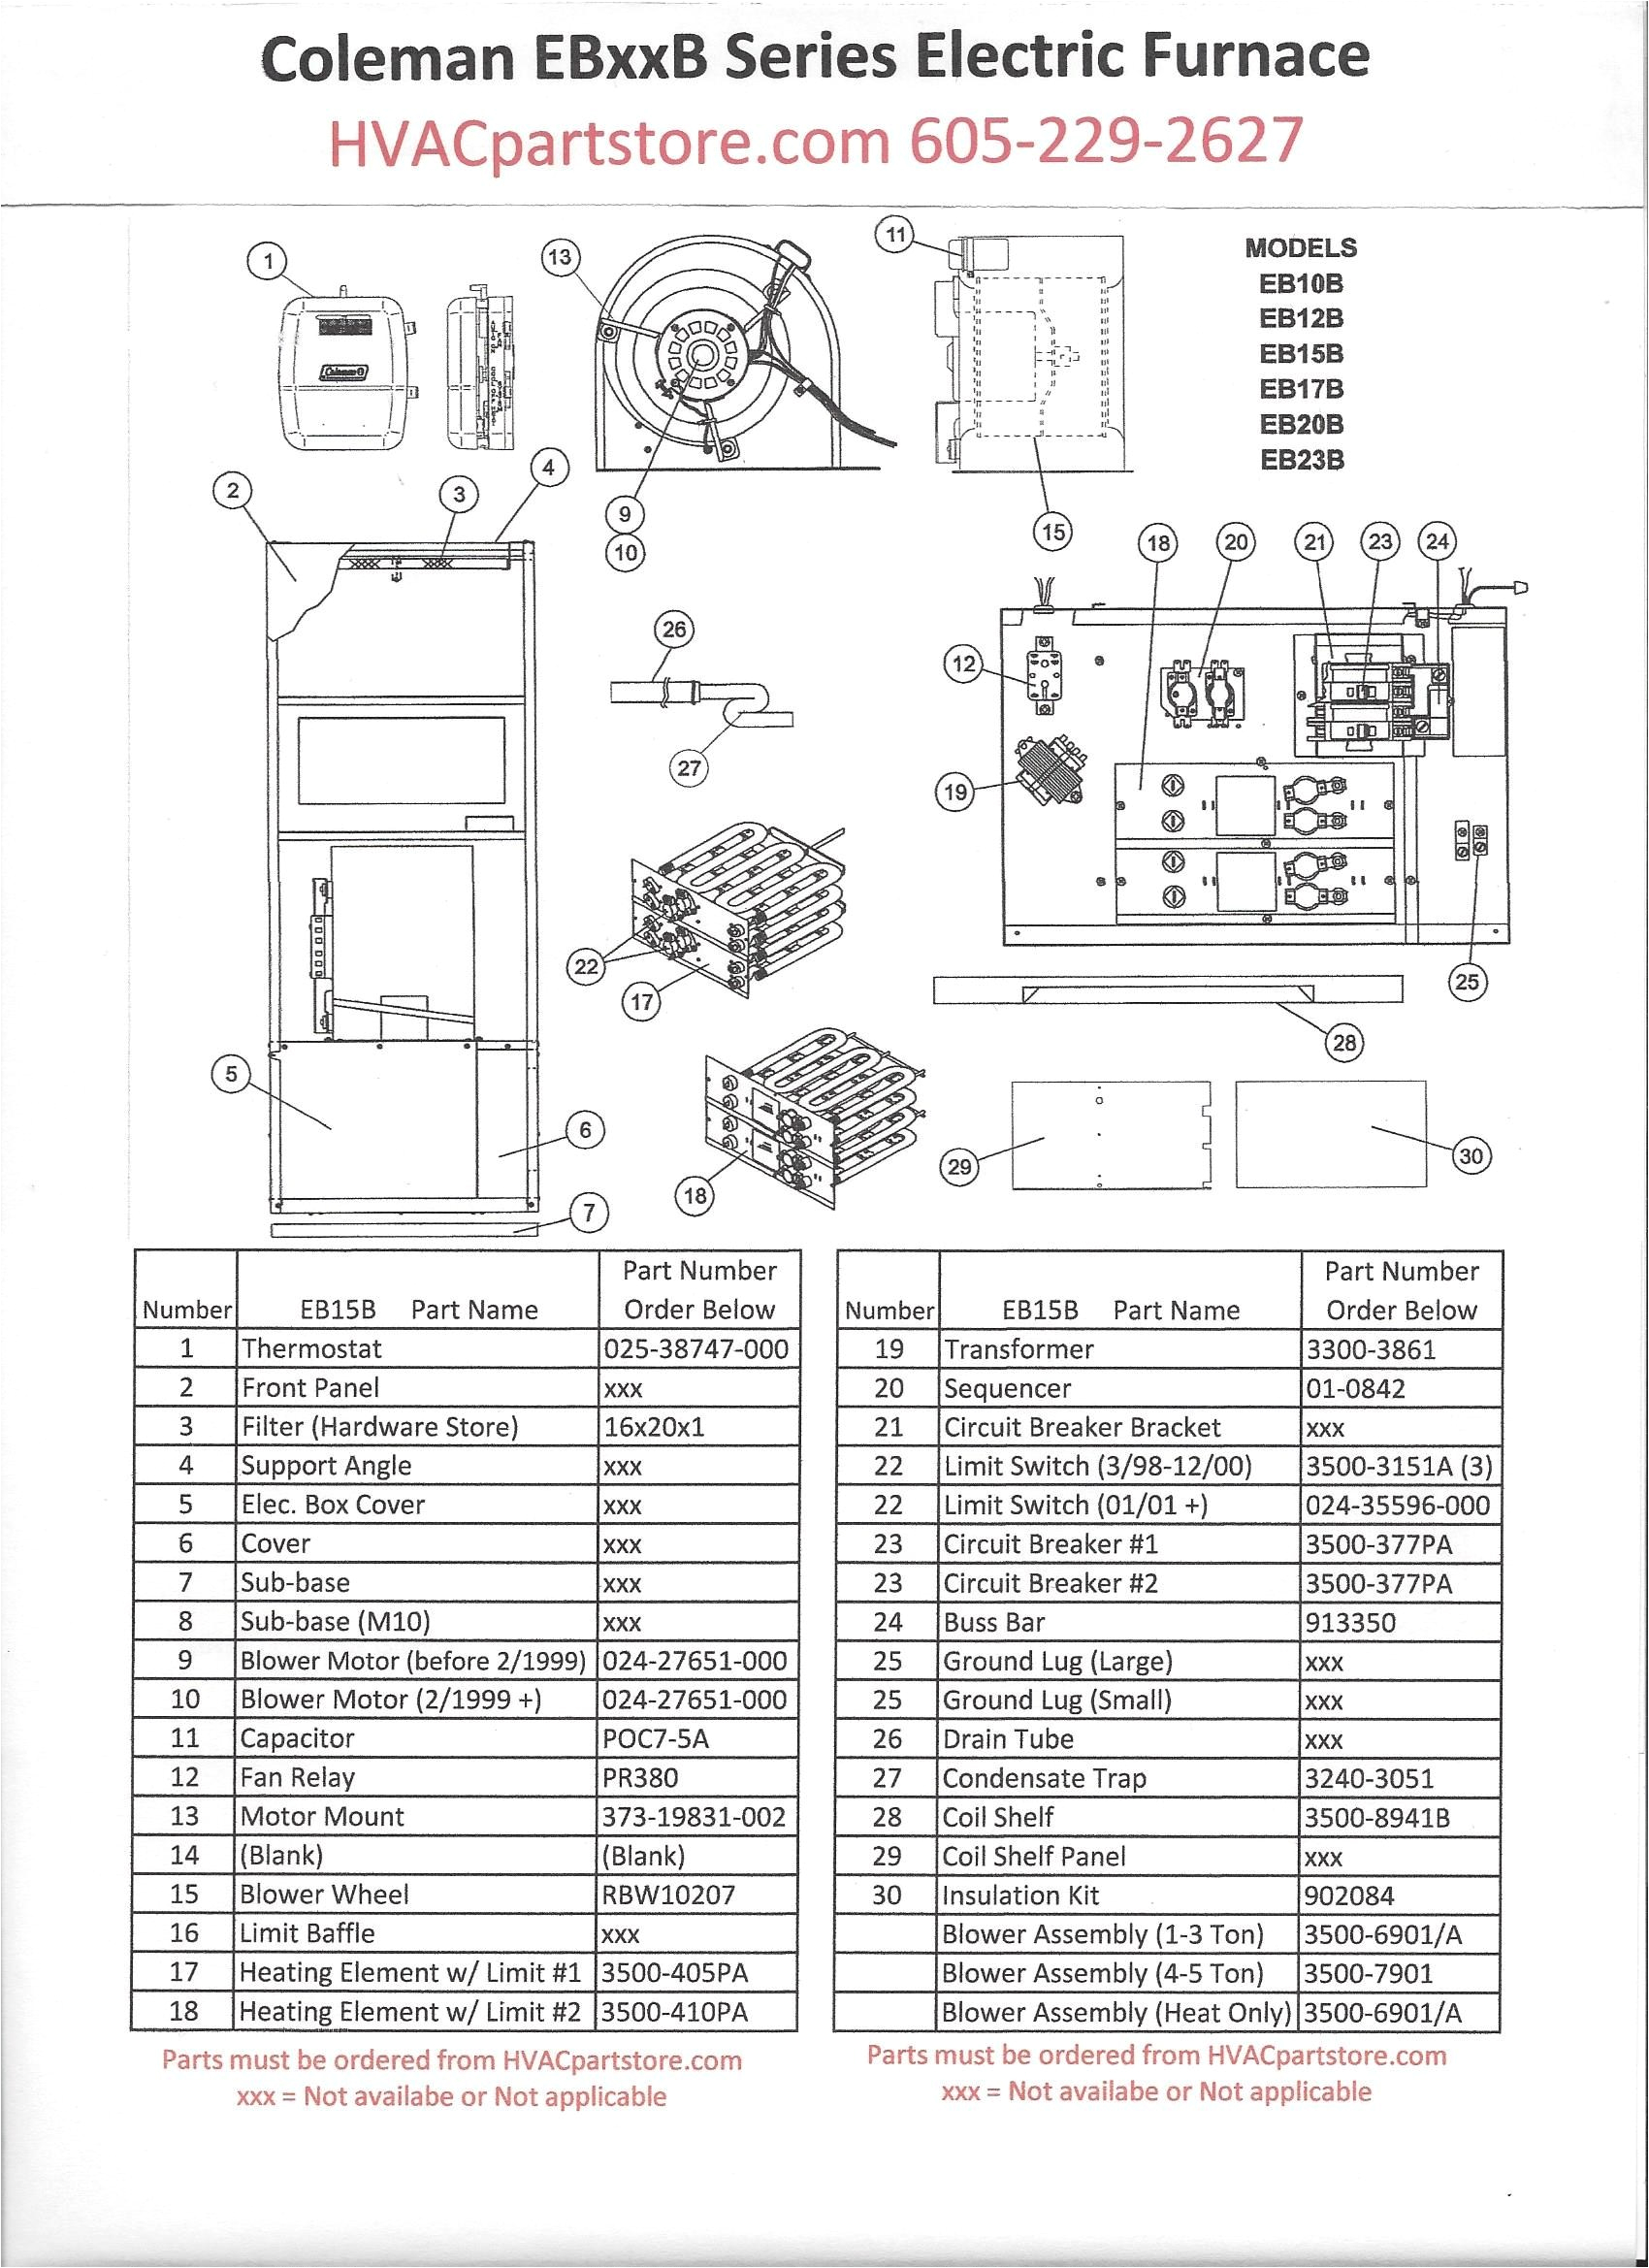 8530a3451 wiring diagram database wiring diagram 8530a3451 wiring diagram